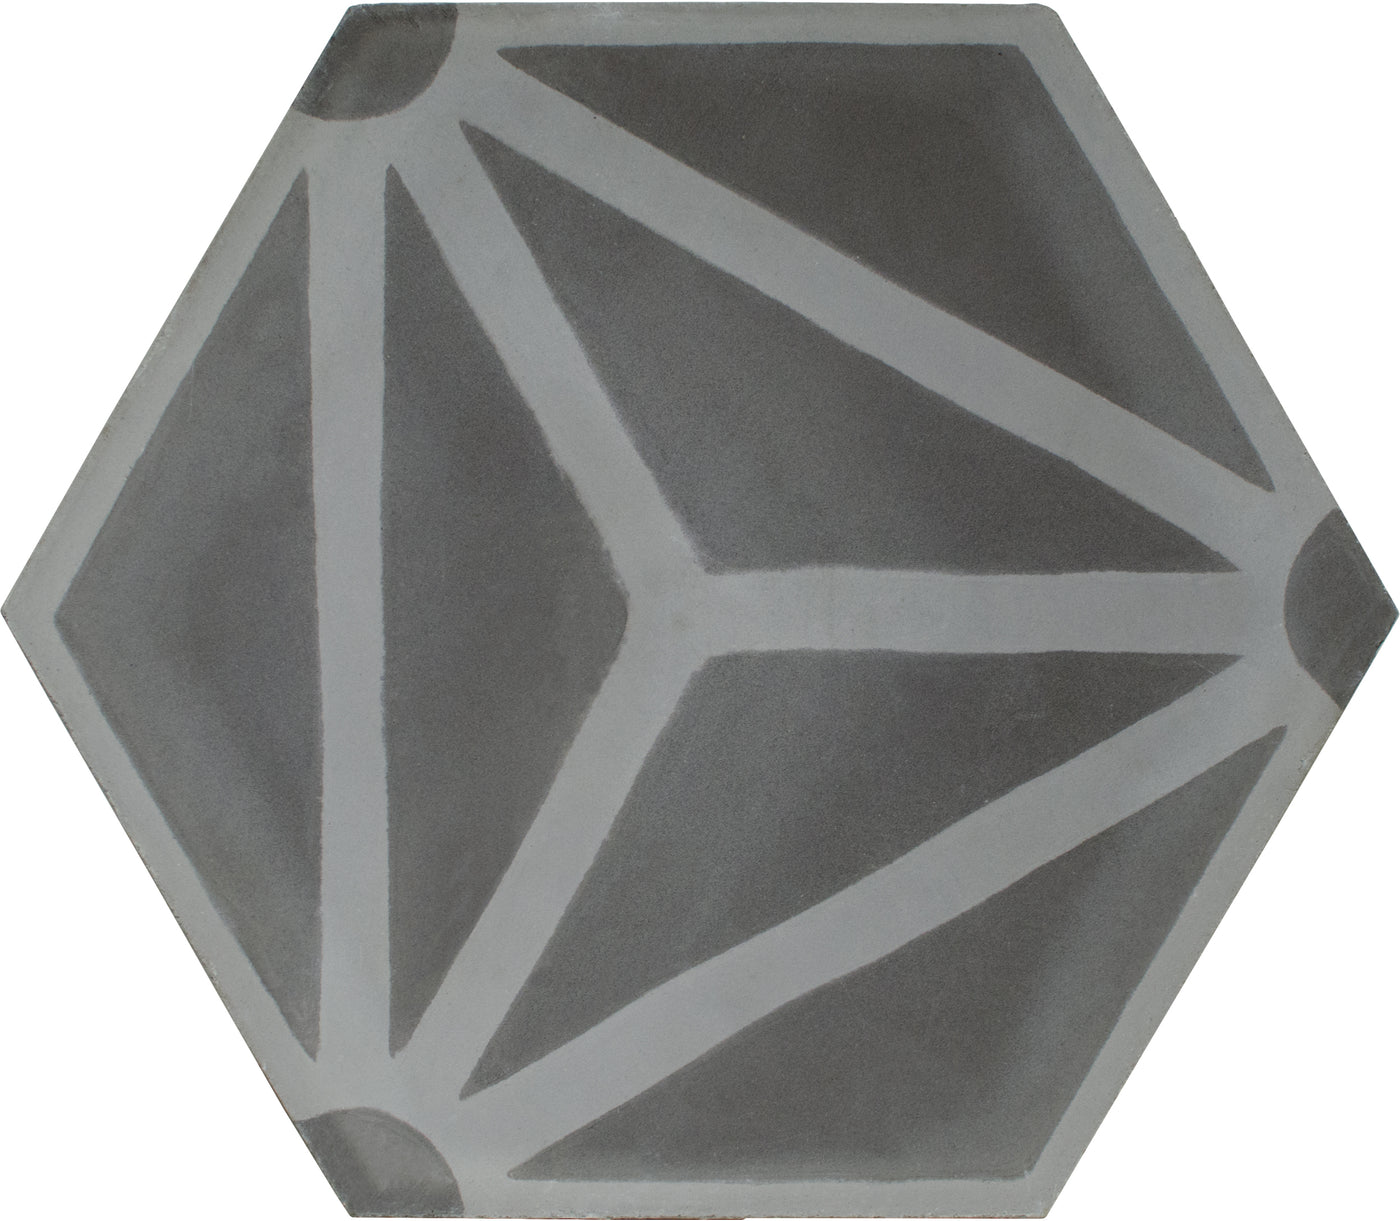 Hexagon cement tile pattern dark grey / grey